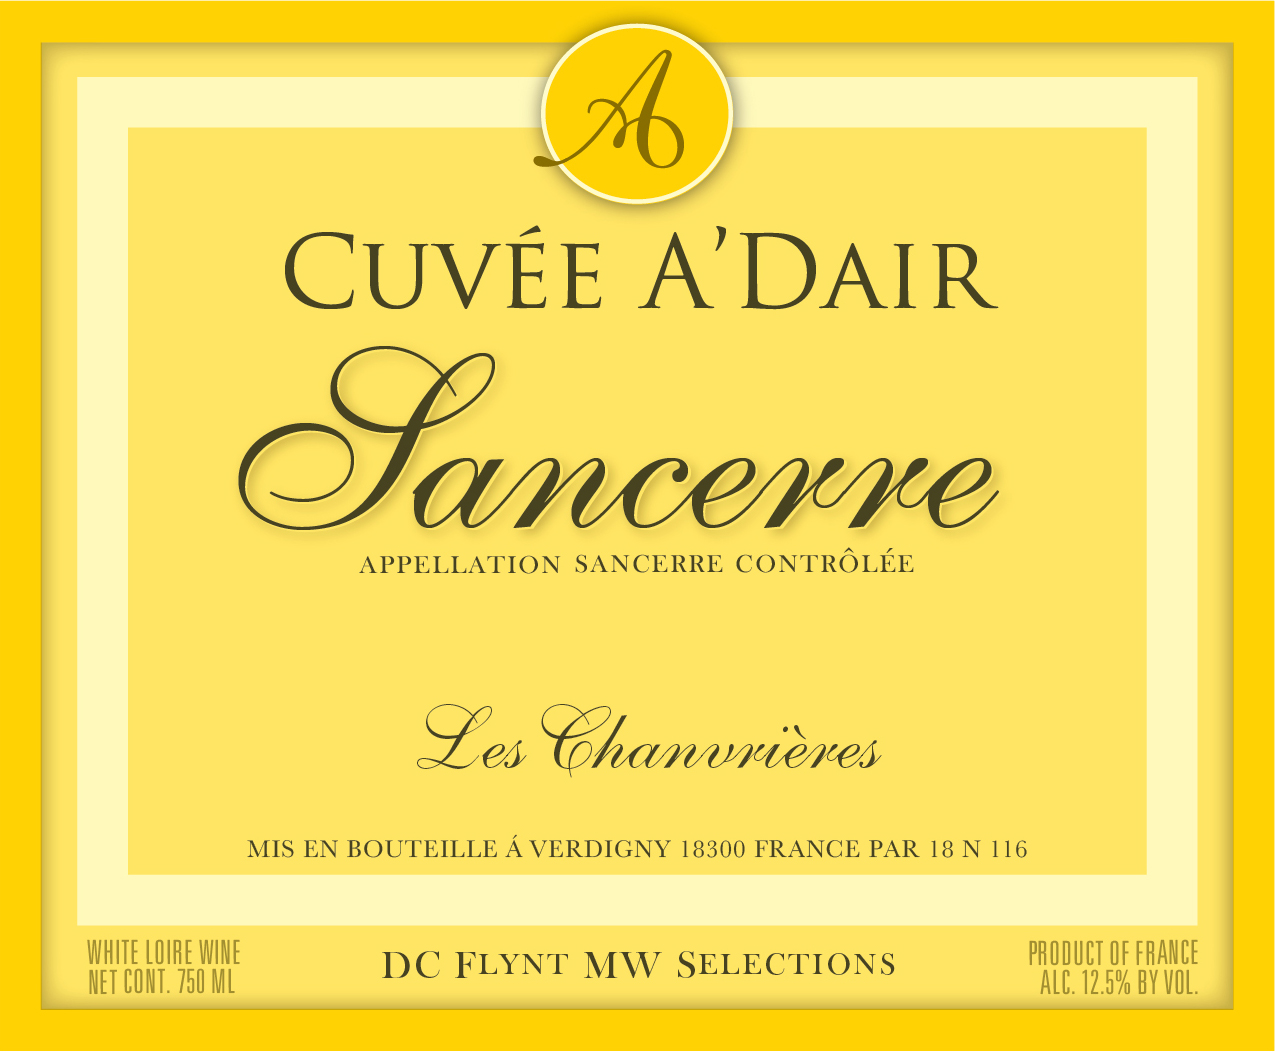 A delicious, blanced Sancerre that drinks refreshingly early on and develops pleasantly with age. It is quite a ripe style for Sancerre with some gooseberry fruit and vibrant mineral, citrus and grapefruit notes that give way to lemon, white peach and flint notes and a long, clean finish. Its bracing freshness, lovely minerality and lifting acidity places it firmly in Sancerre.